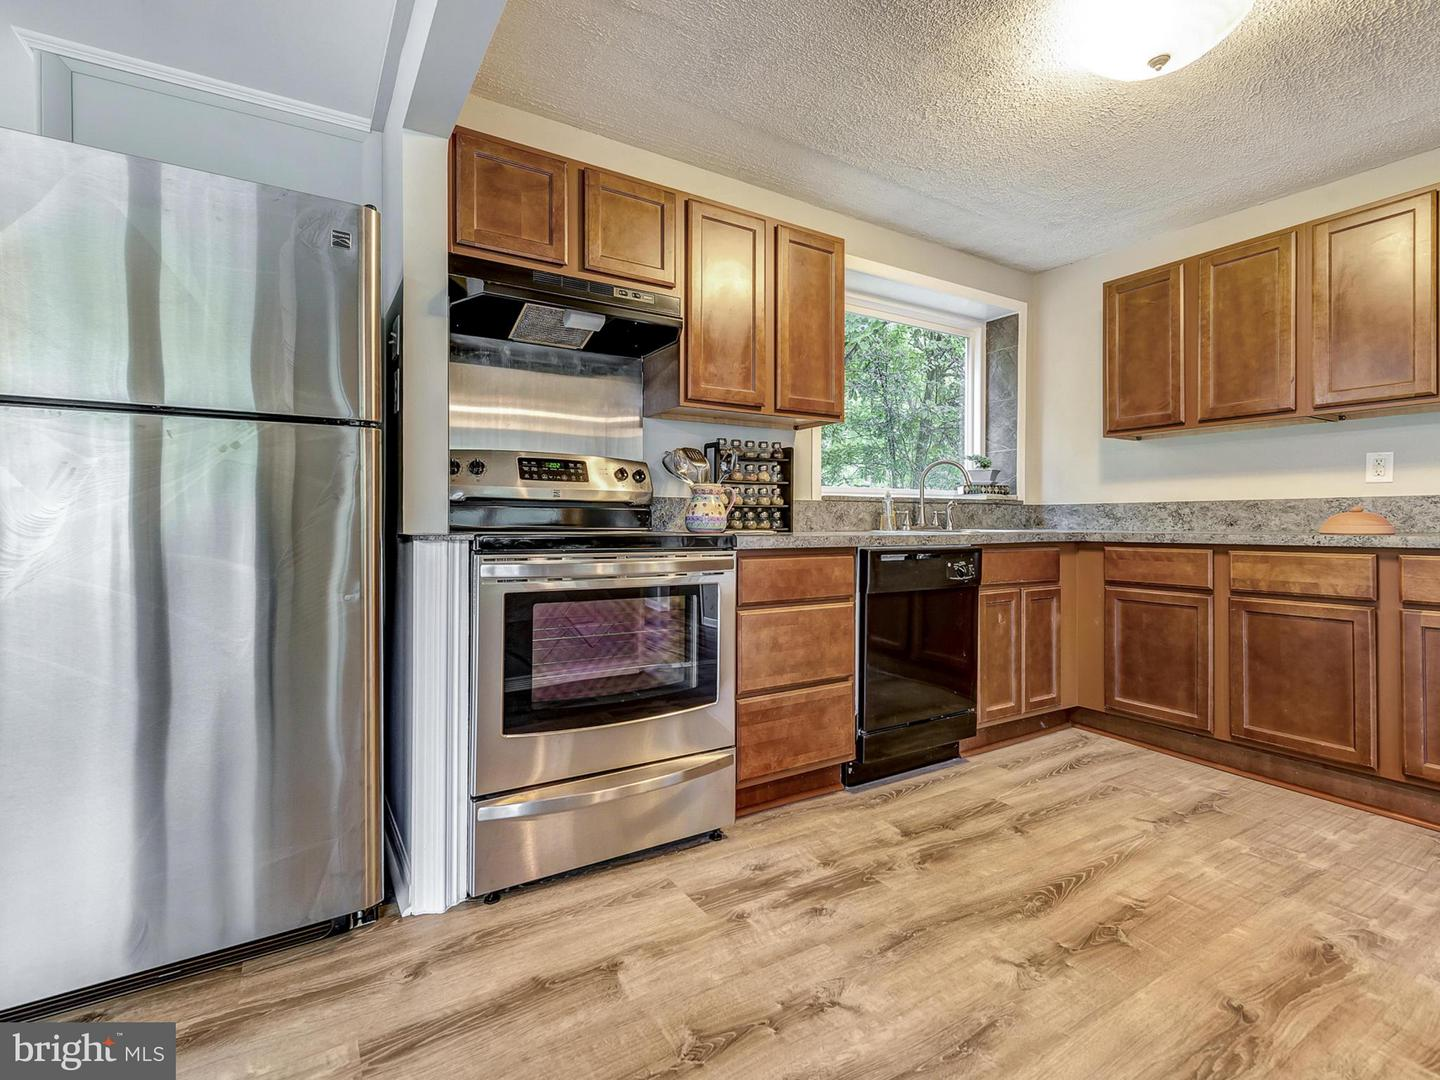 Other Residential for Rent at 8101 Holly Ln Clinton, Maryland 20735 United States